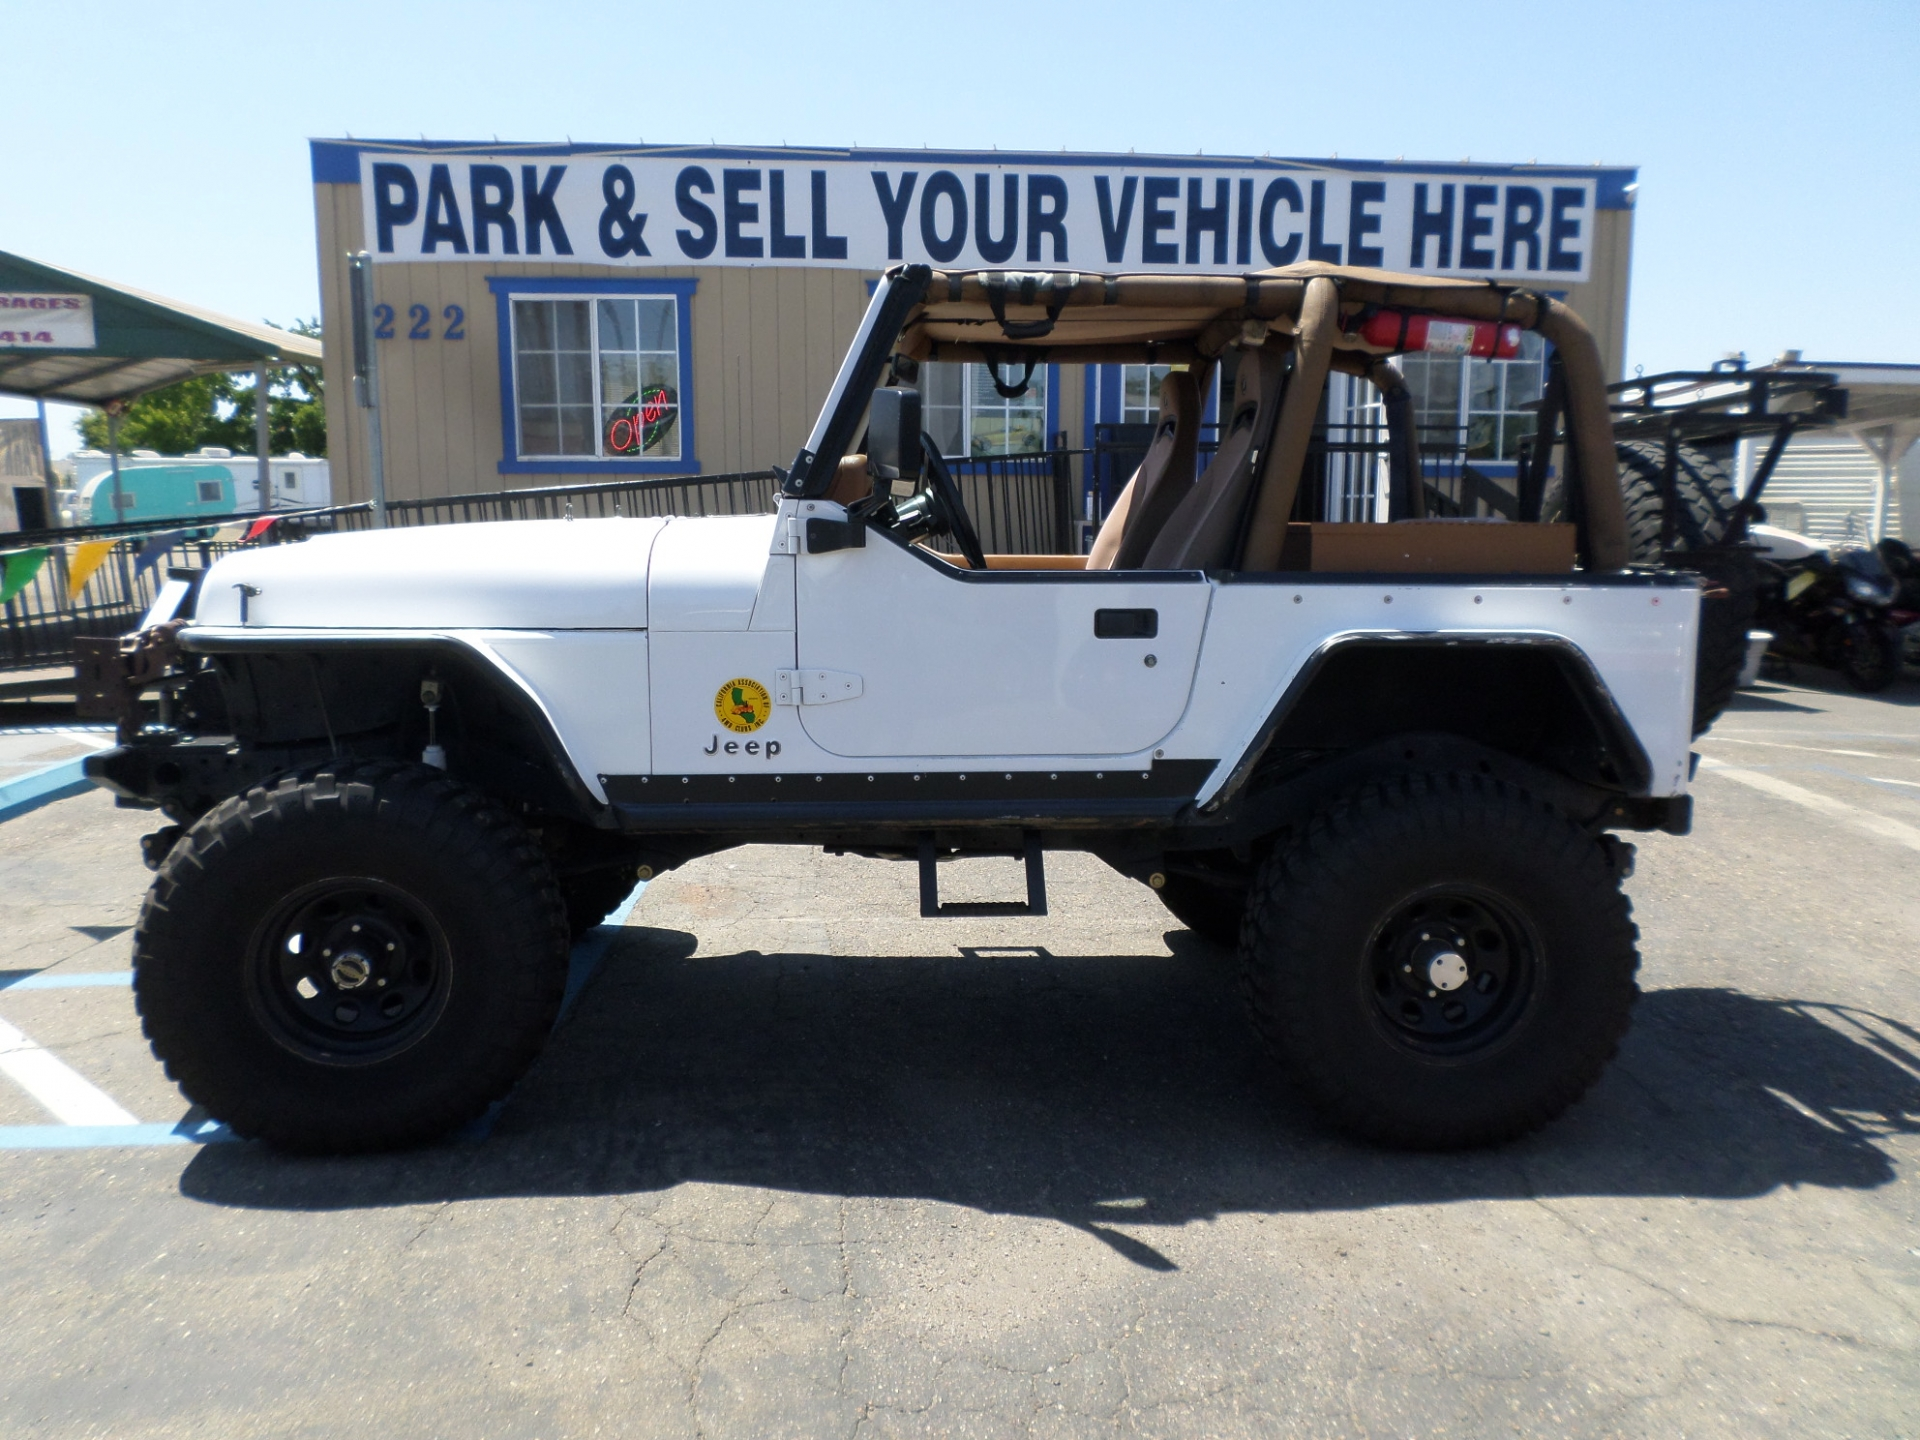 SUV for sale: 1995 Jeep YJ in Lodi Stockton CA - Lodi Park